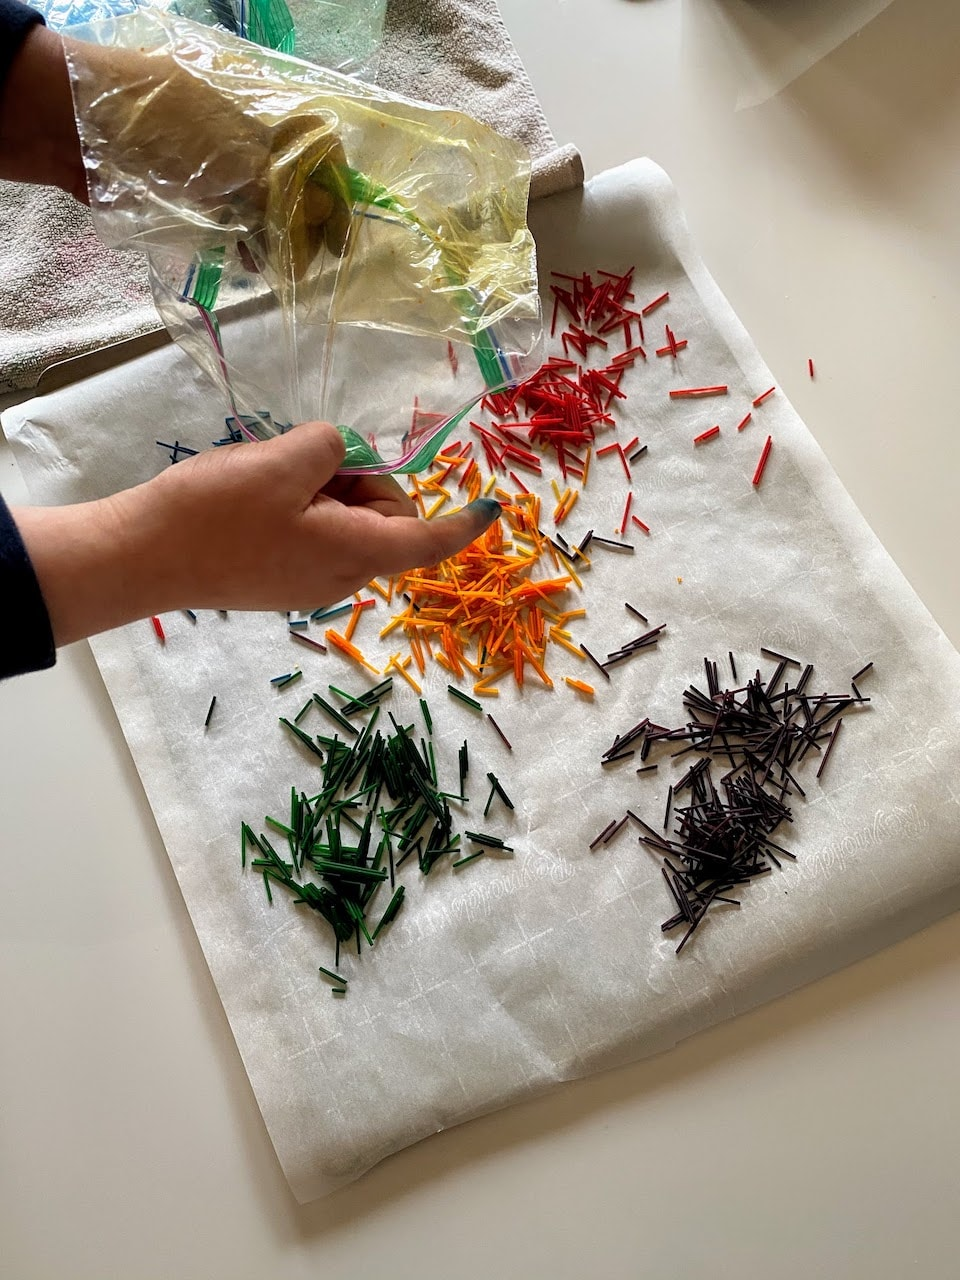 emptying bags of colored spaghetti noodles onto baking sheet to dry